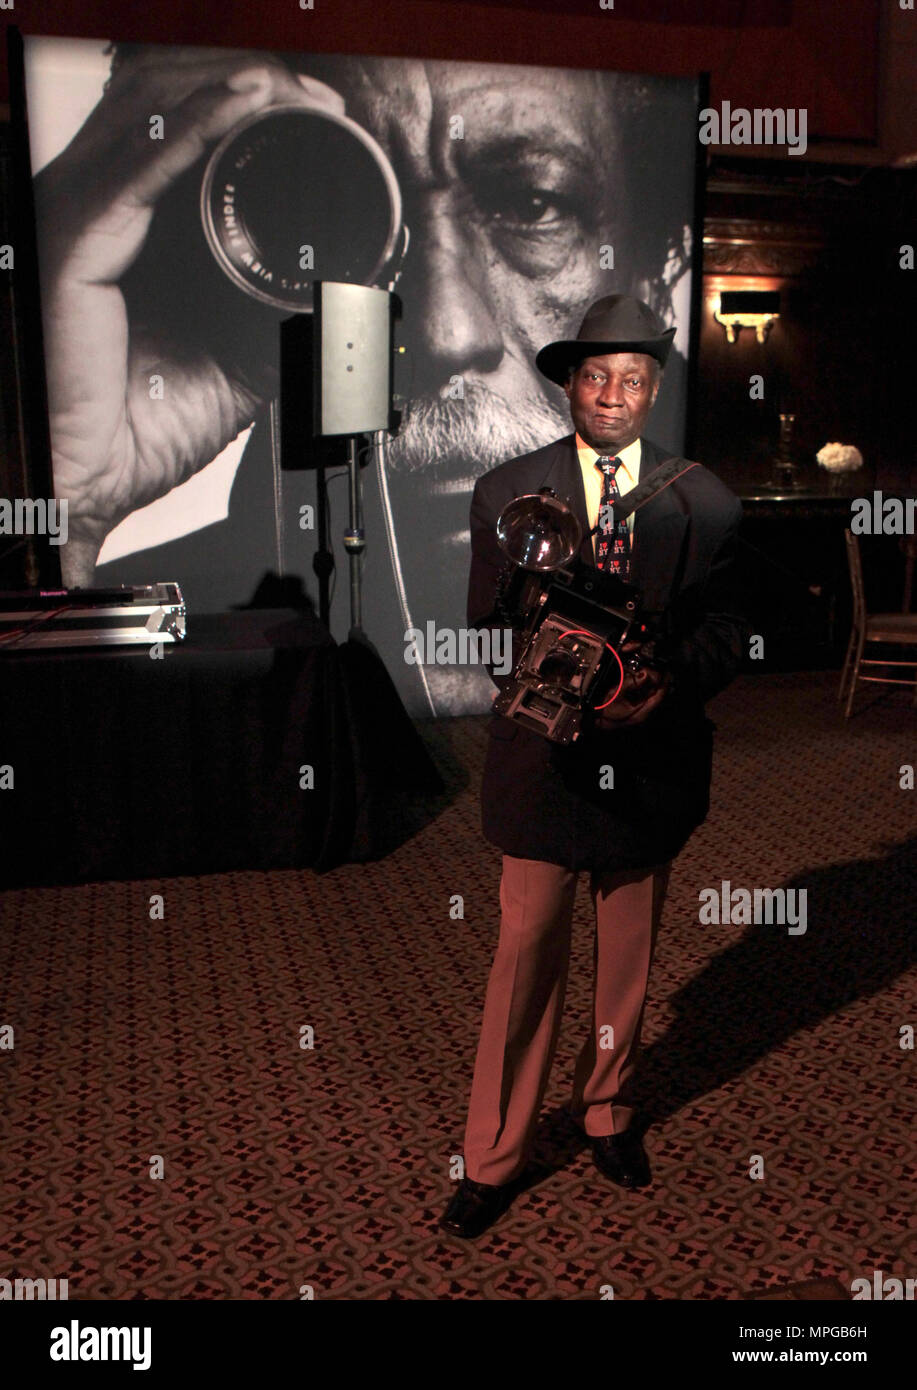 New York, NY, USA. 22nd May, 2018. Photographer Louis Mendes attends the Gordon Parks Foundation Awards Dinner & Auctionn: Celebrating the Arts & Humanitarianism held at Cipriani 42nd Street on May 22, 2018 in New York City. Credit: Mpi43/Media Punch/Alamy Live News - Stock Image